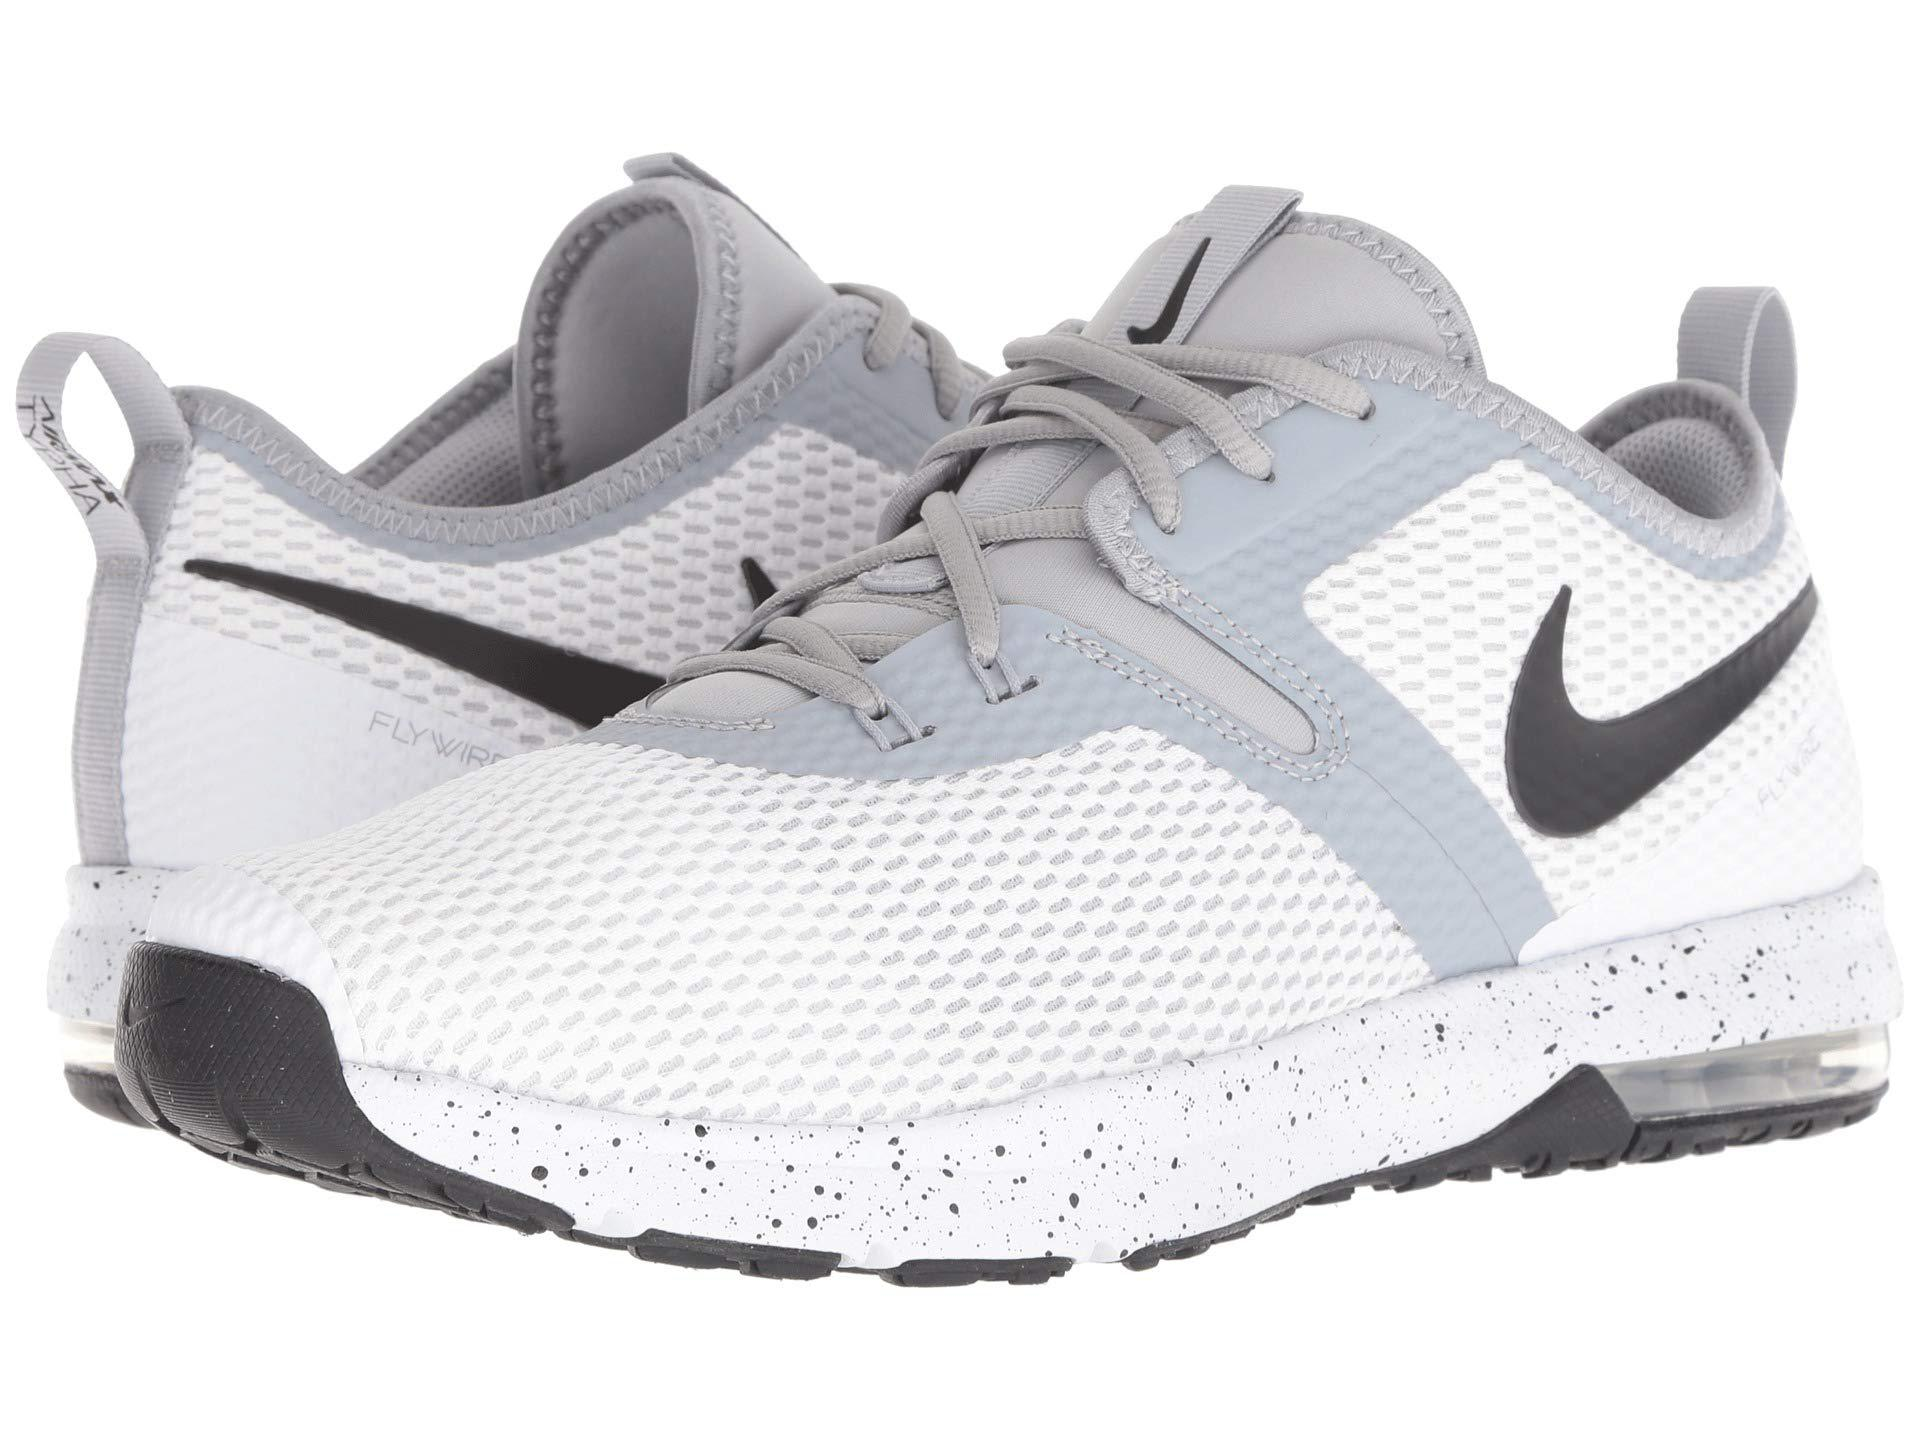 official photos d165a 893b4 Lyst - Nike Air Max Typha 2 (black white) Men s Cross Training Shoes ...